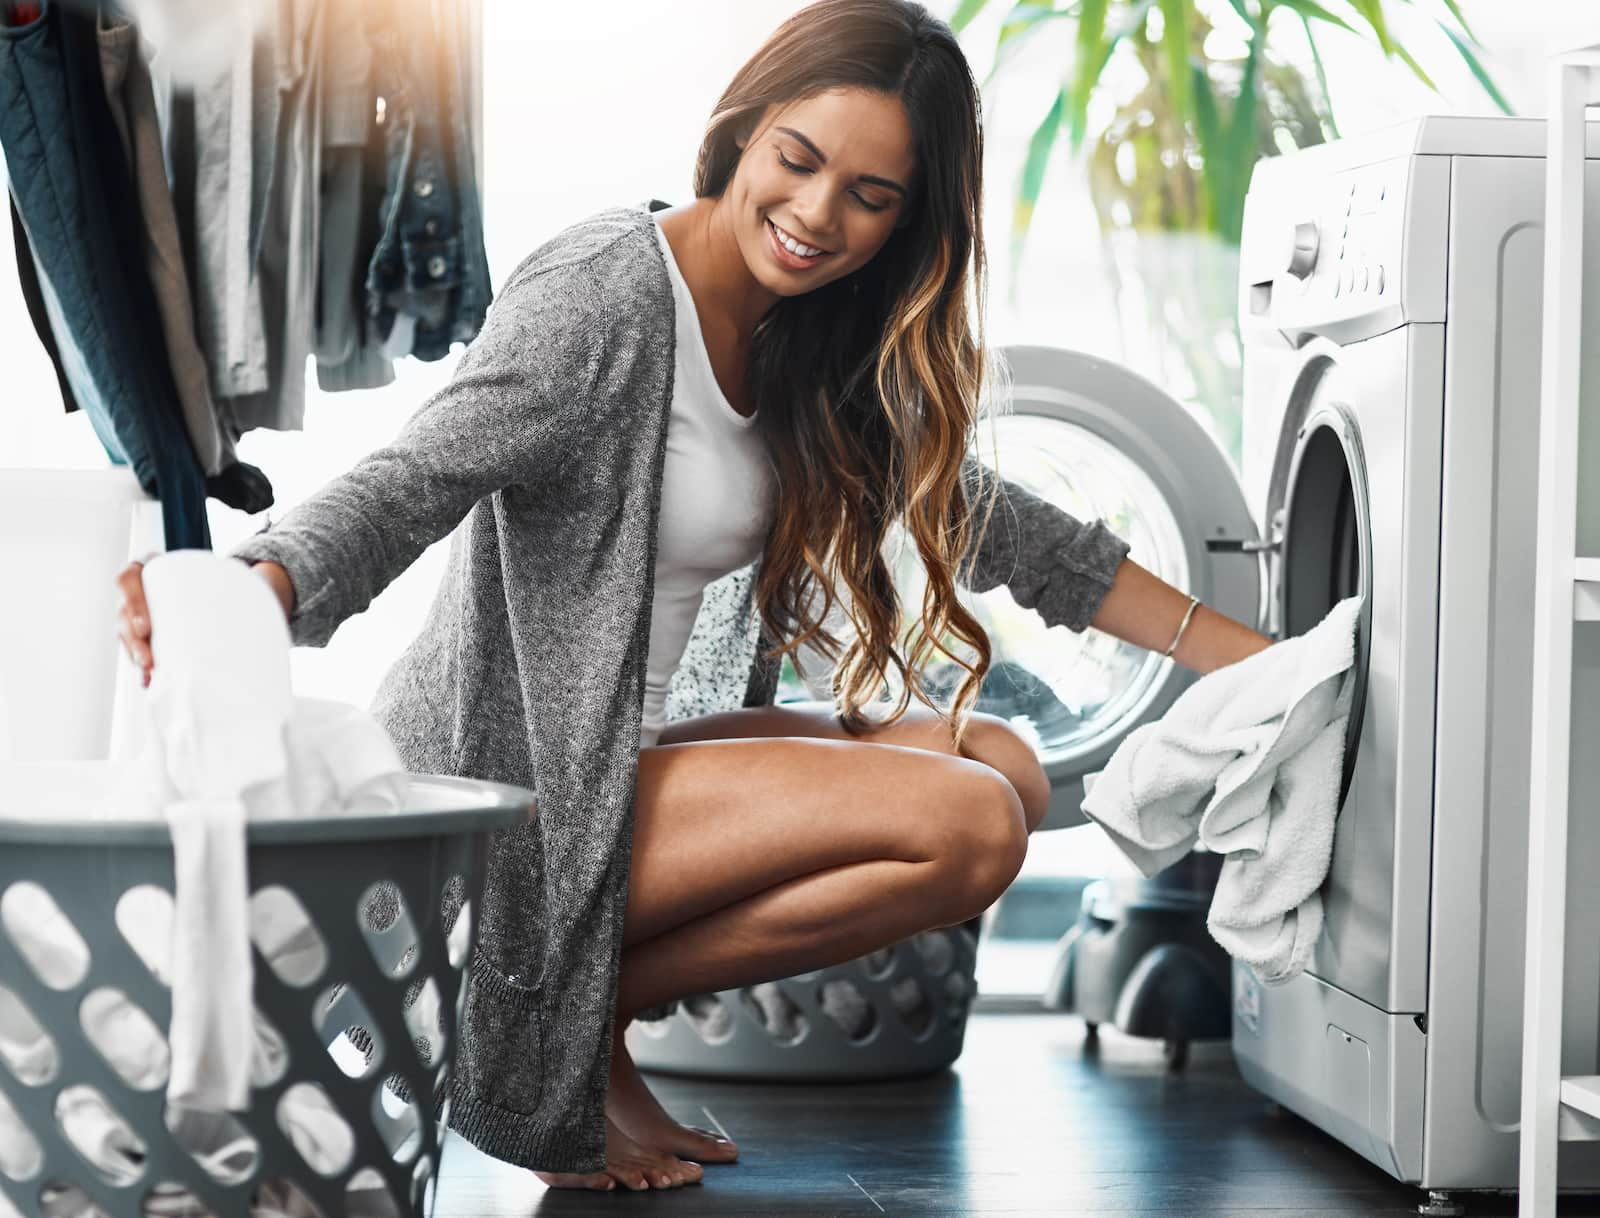 woman crouching next to dryer doing laundry